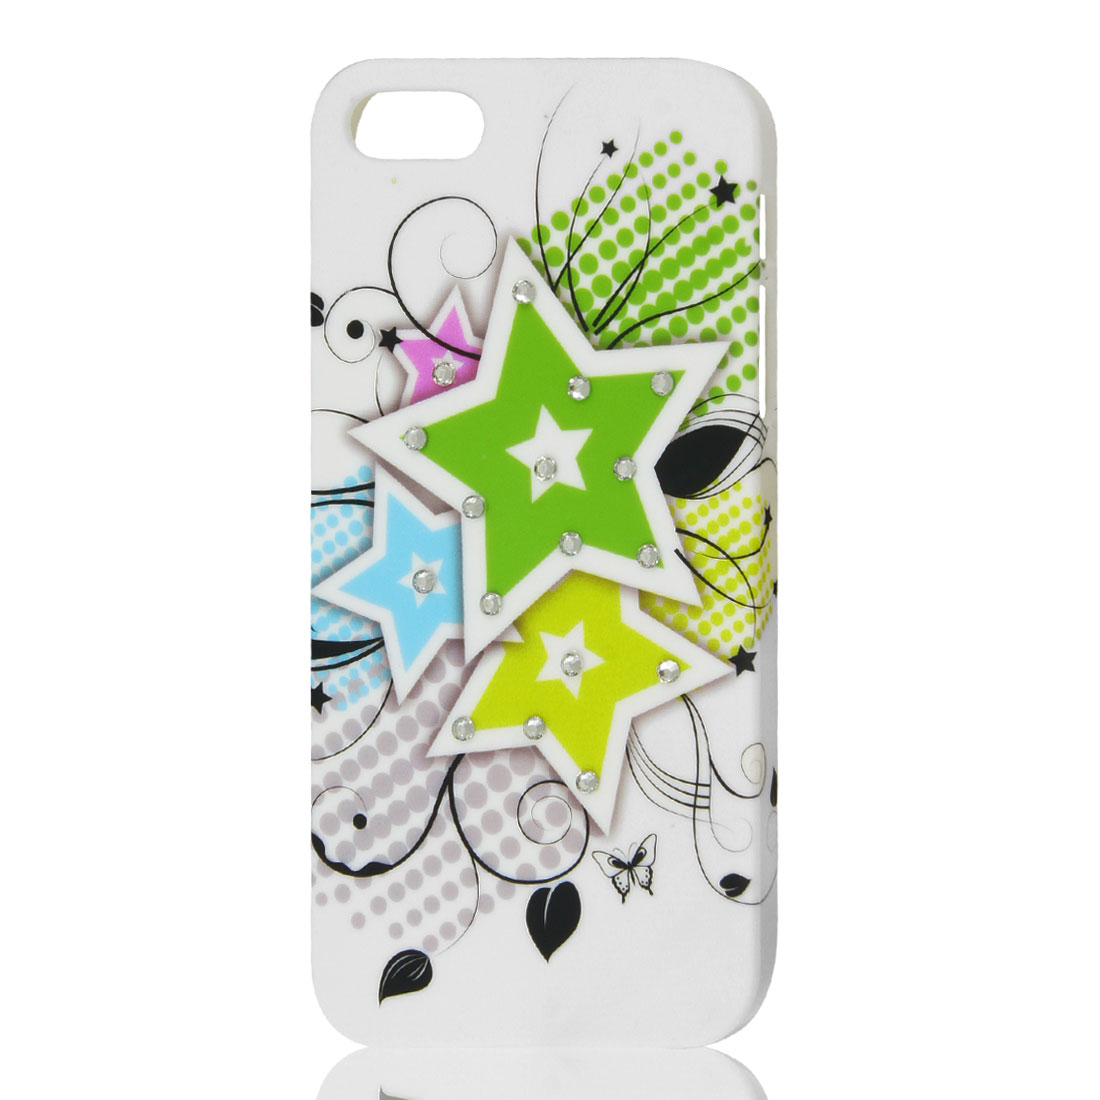 White Glitter Rhinestone Dots Star Pattern Hard Back Case Cover for iPhone 5 5G